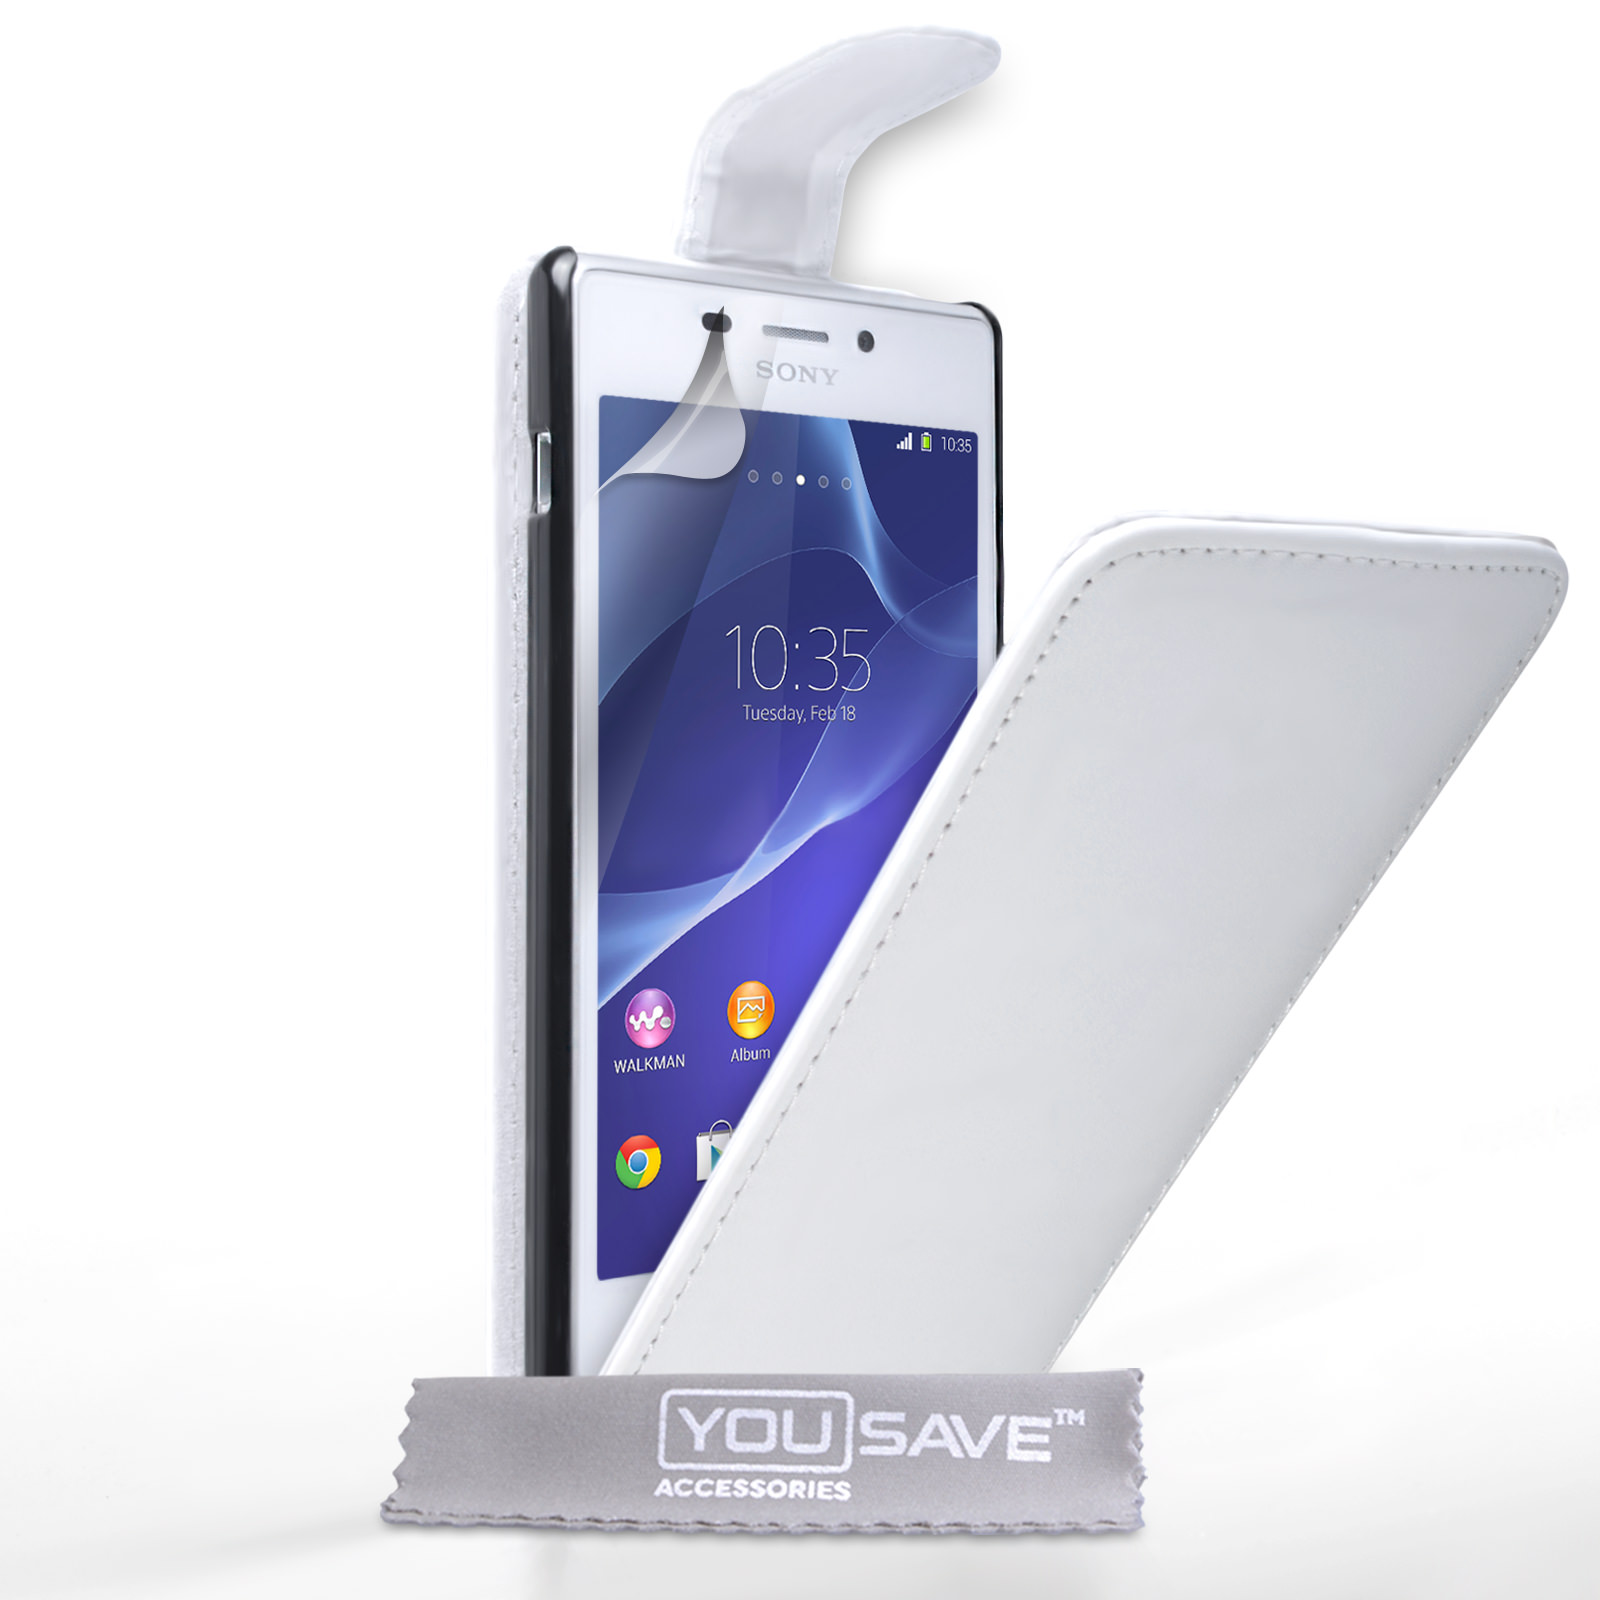 YouSave Accessories Sony Xperia M2 Leather-Effect Flip Case - White